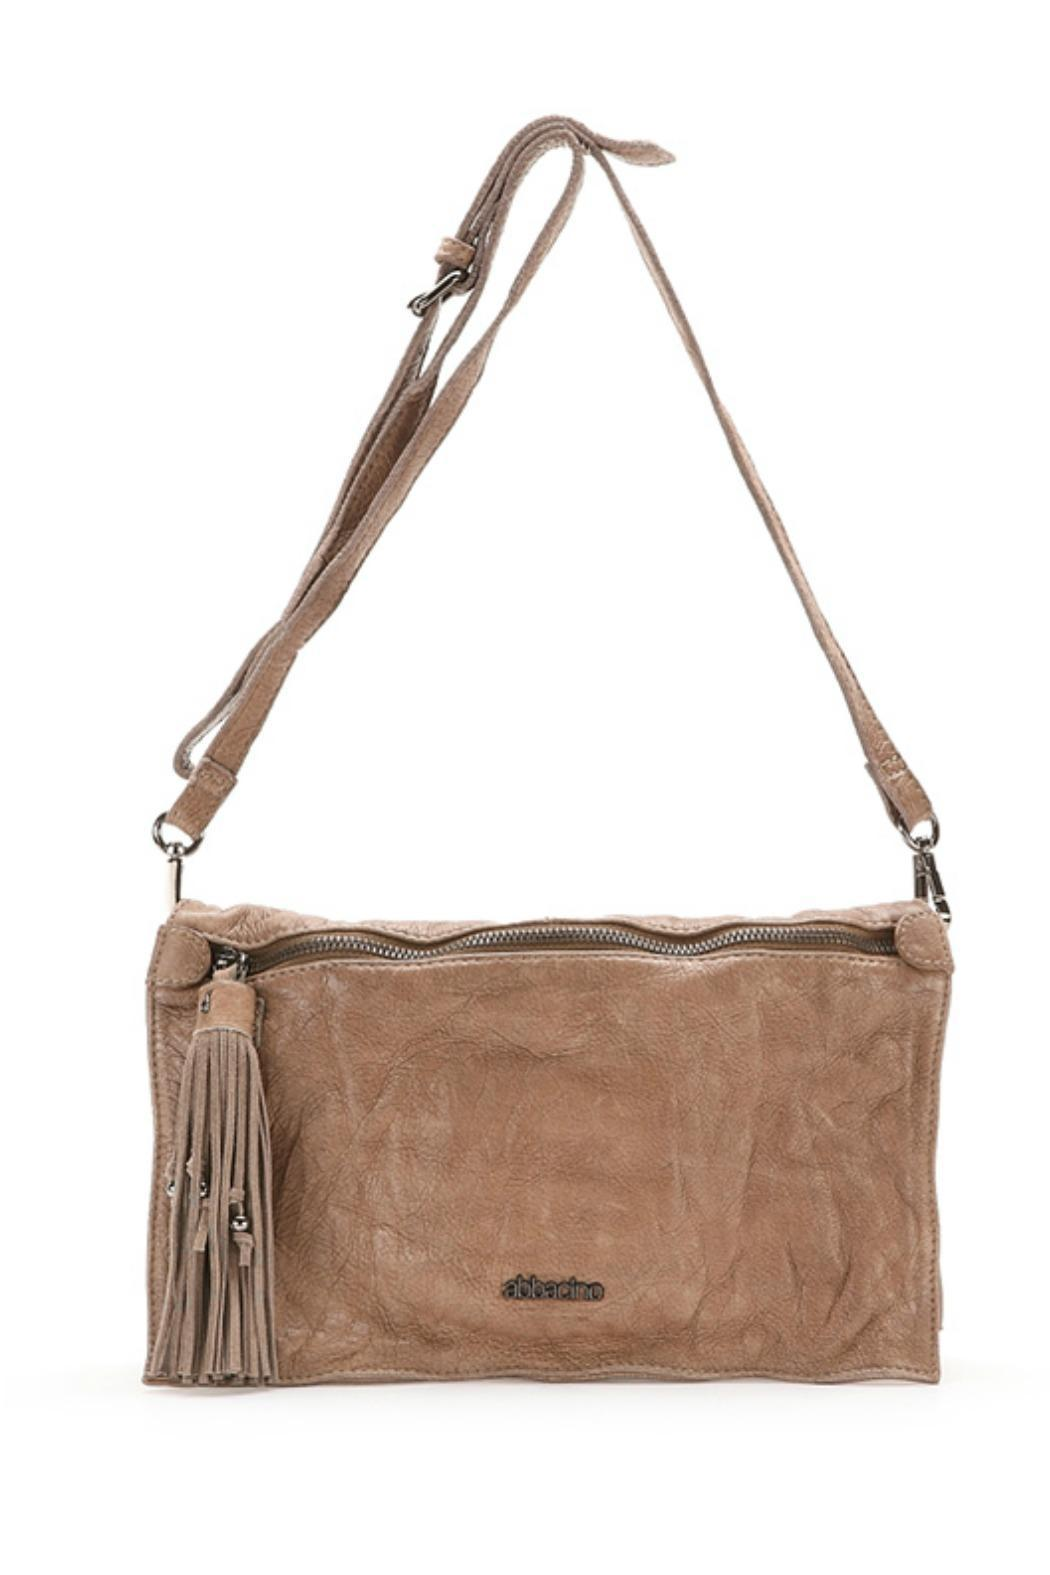 84c44e10a8 abbacino Sarah Leather Cross Body Bag from Vale of Glamorgan by ...